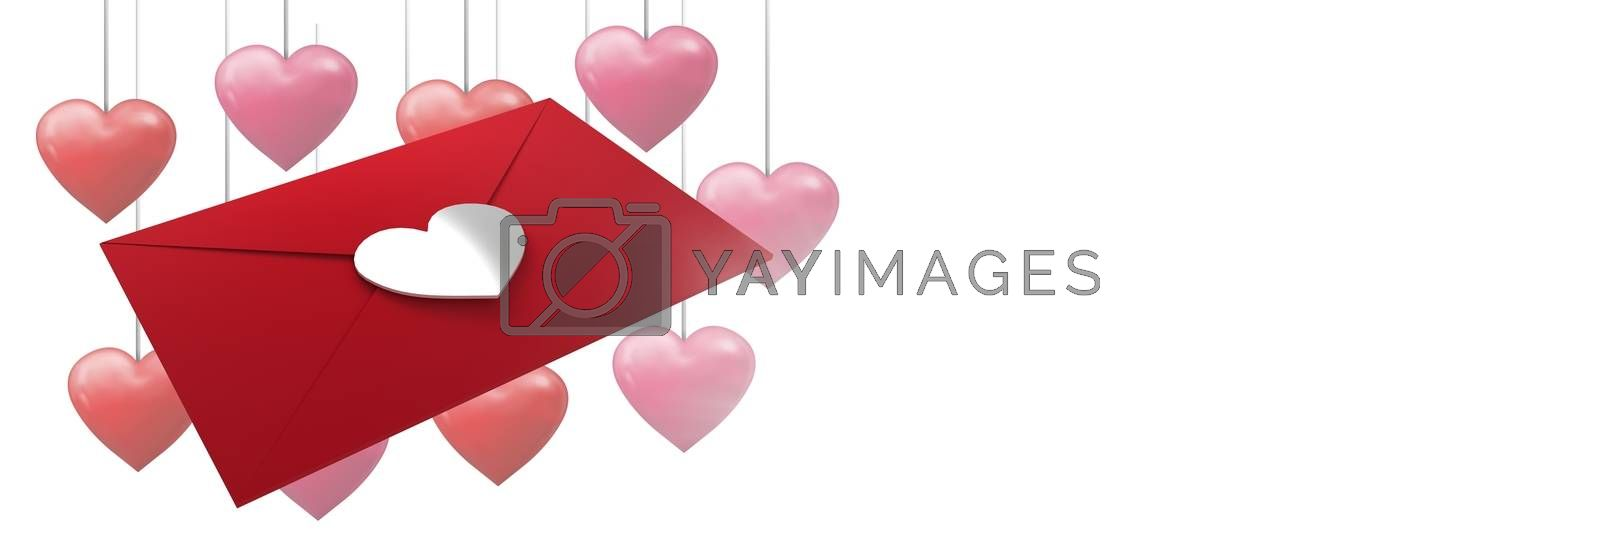 Digital composite of Valentines love letter and love hearts background